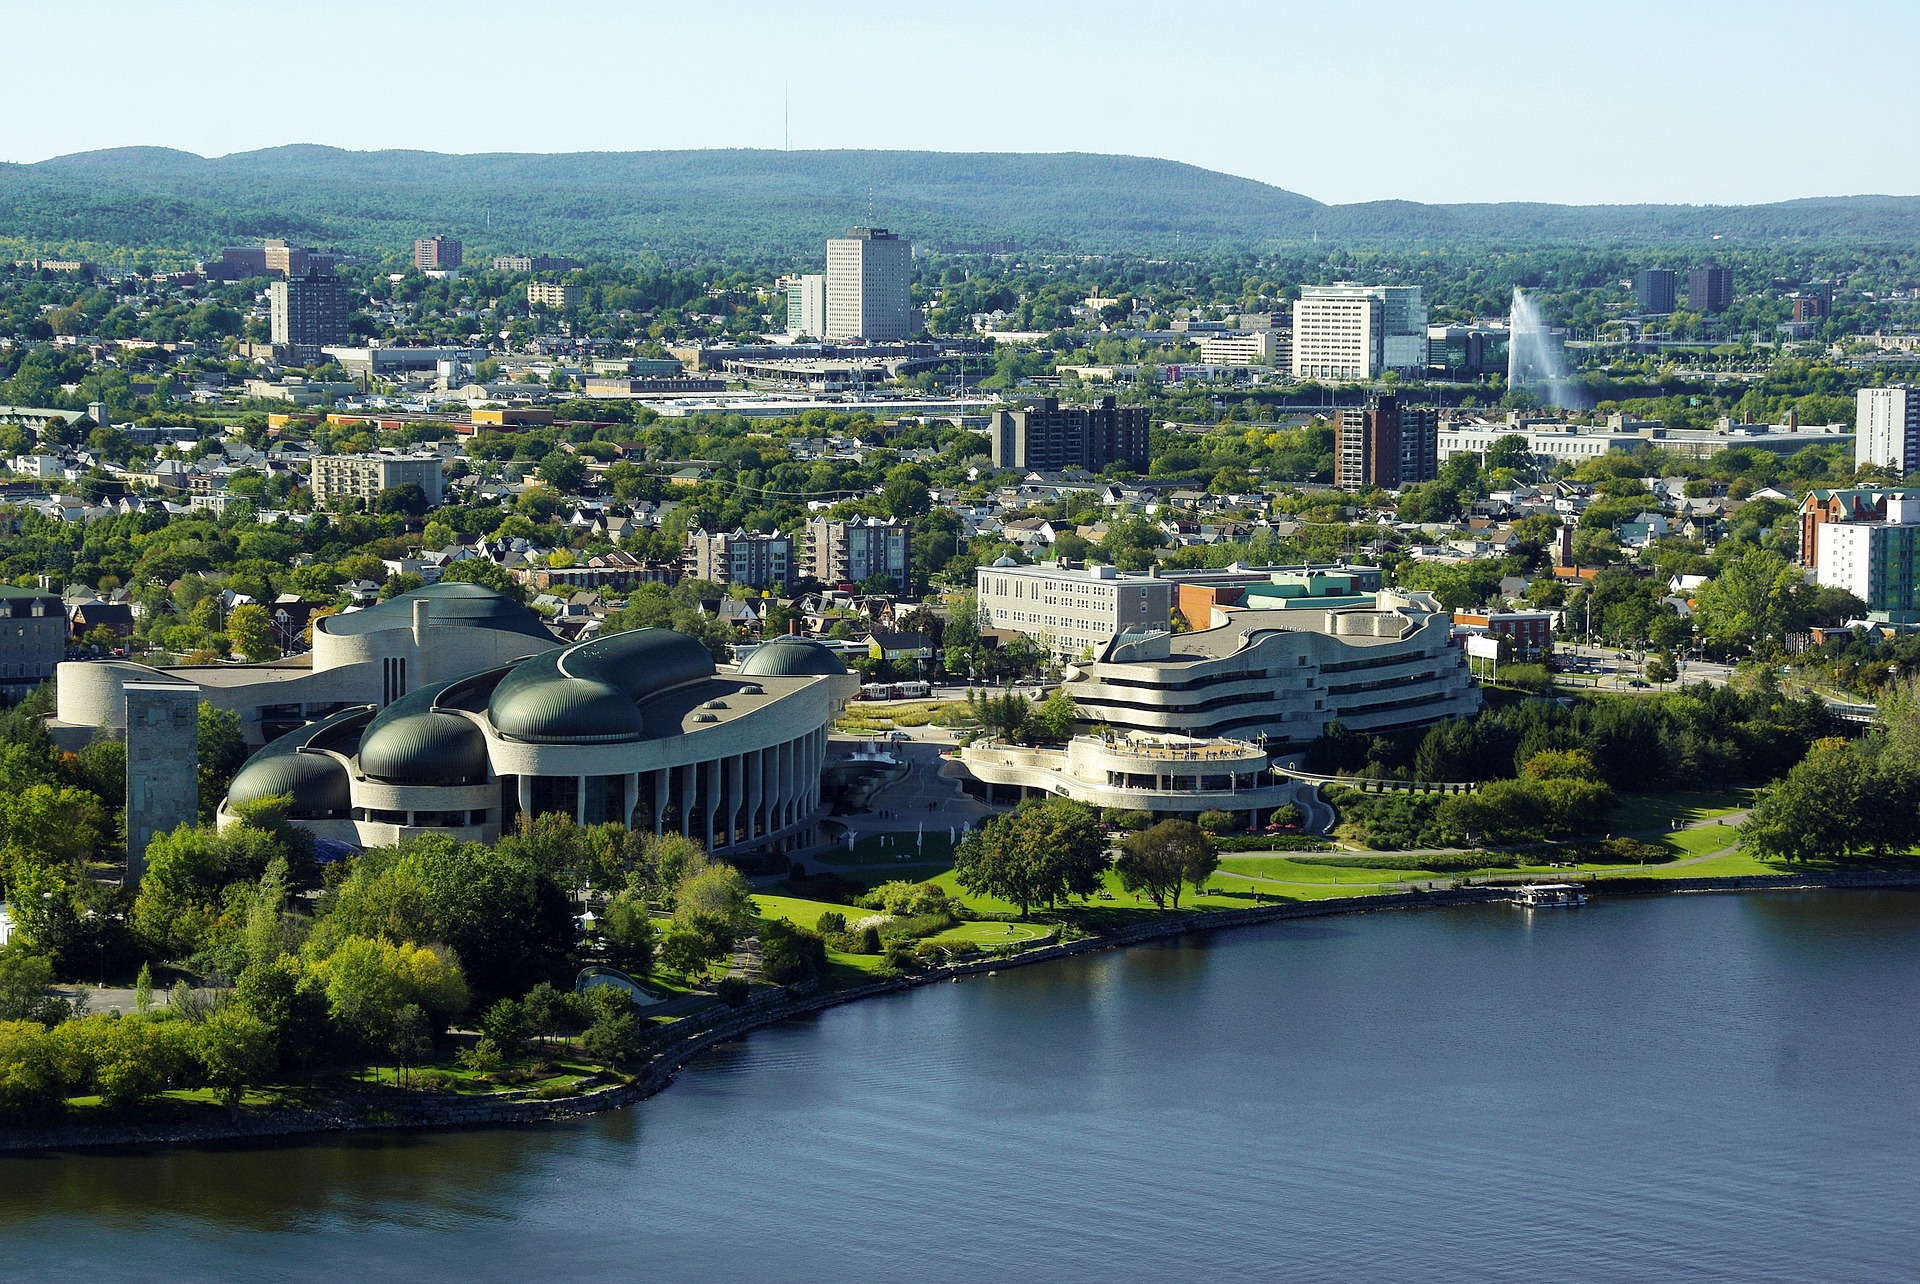 jobs hiring in Ottawa, Oh. Browse jobs and apply online. Search to find your next job in Ottawa.